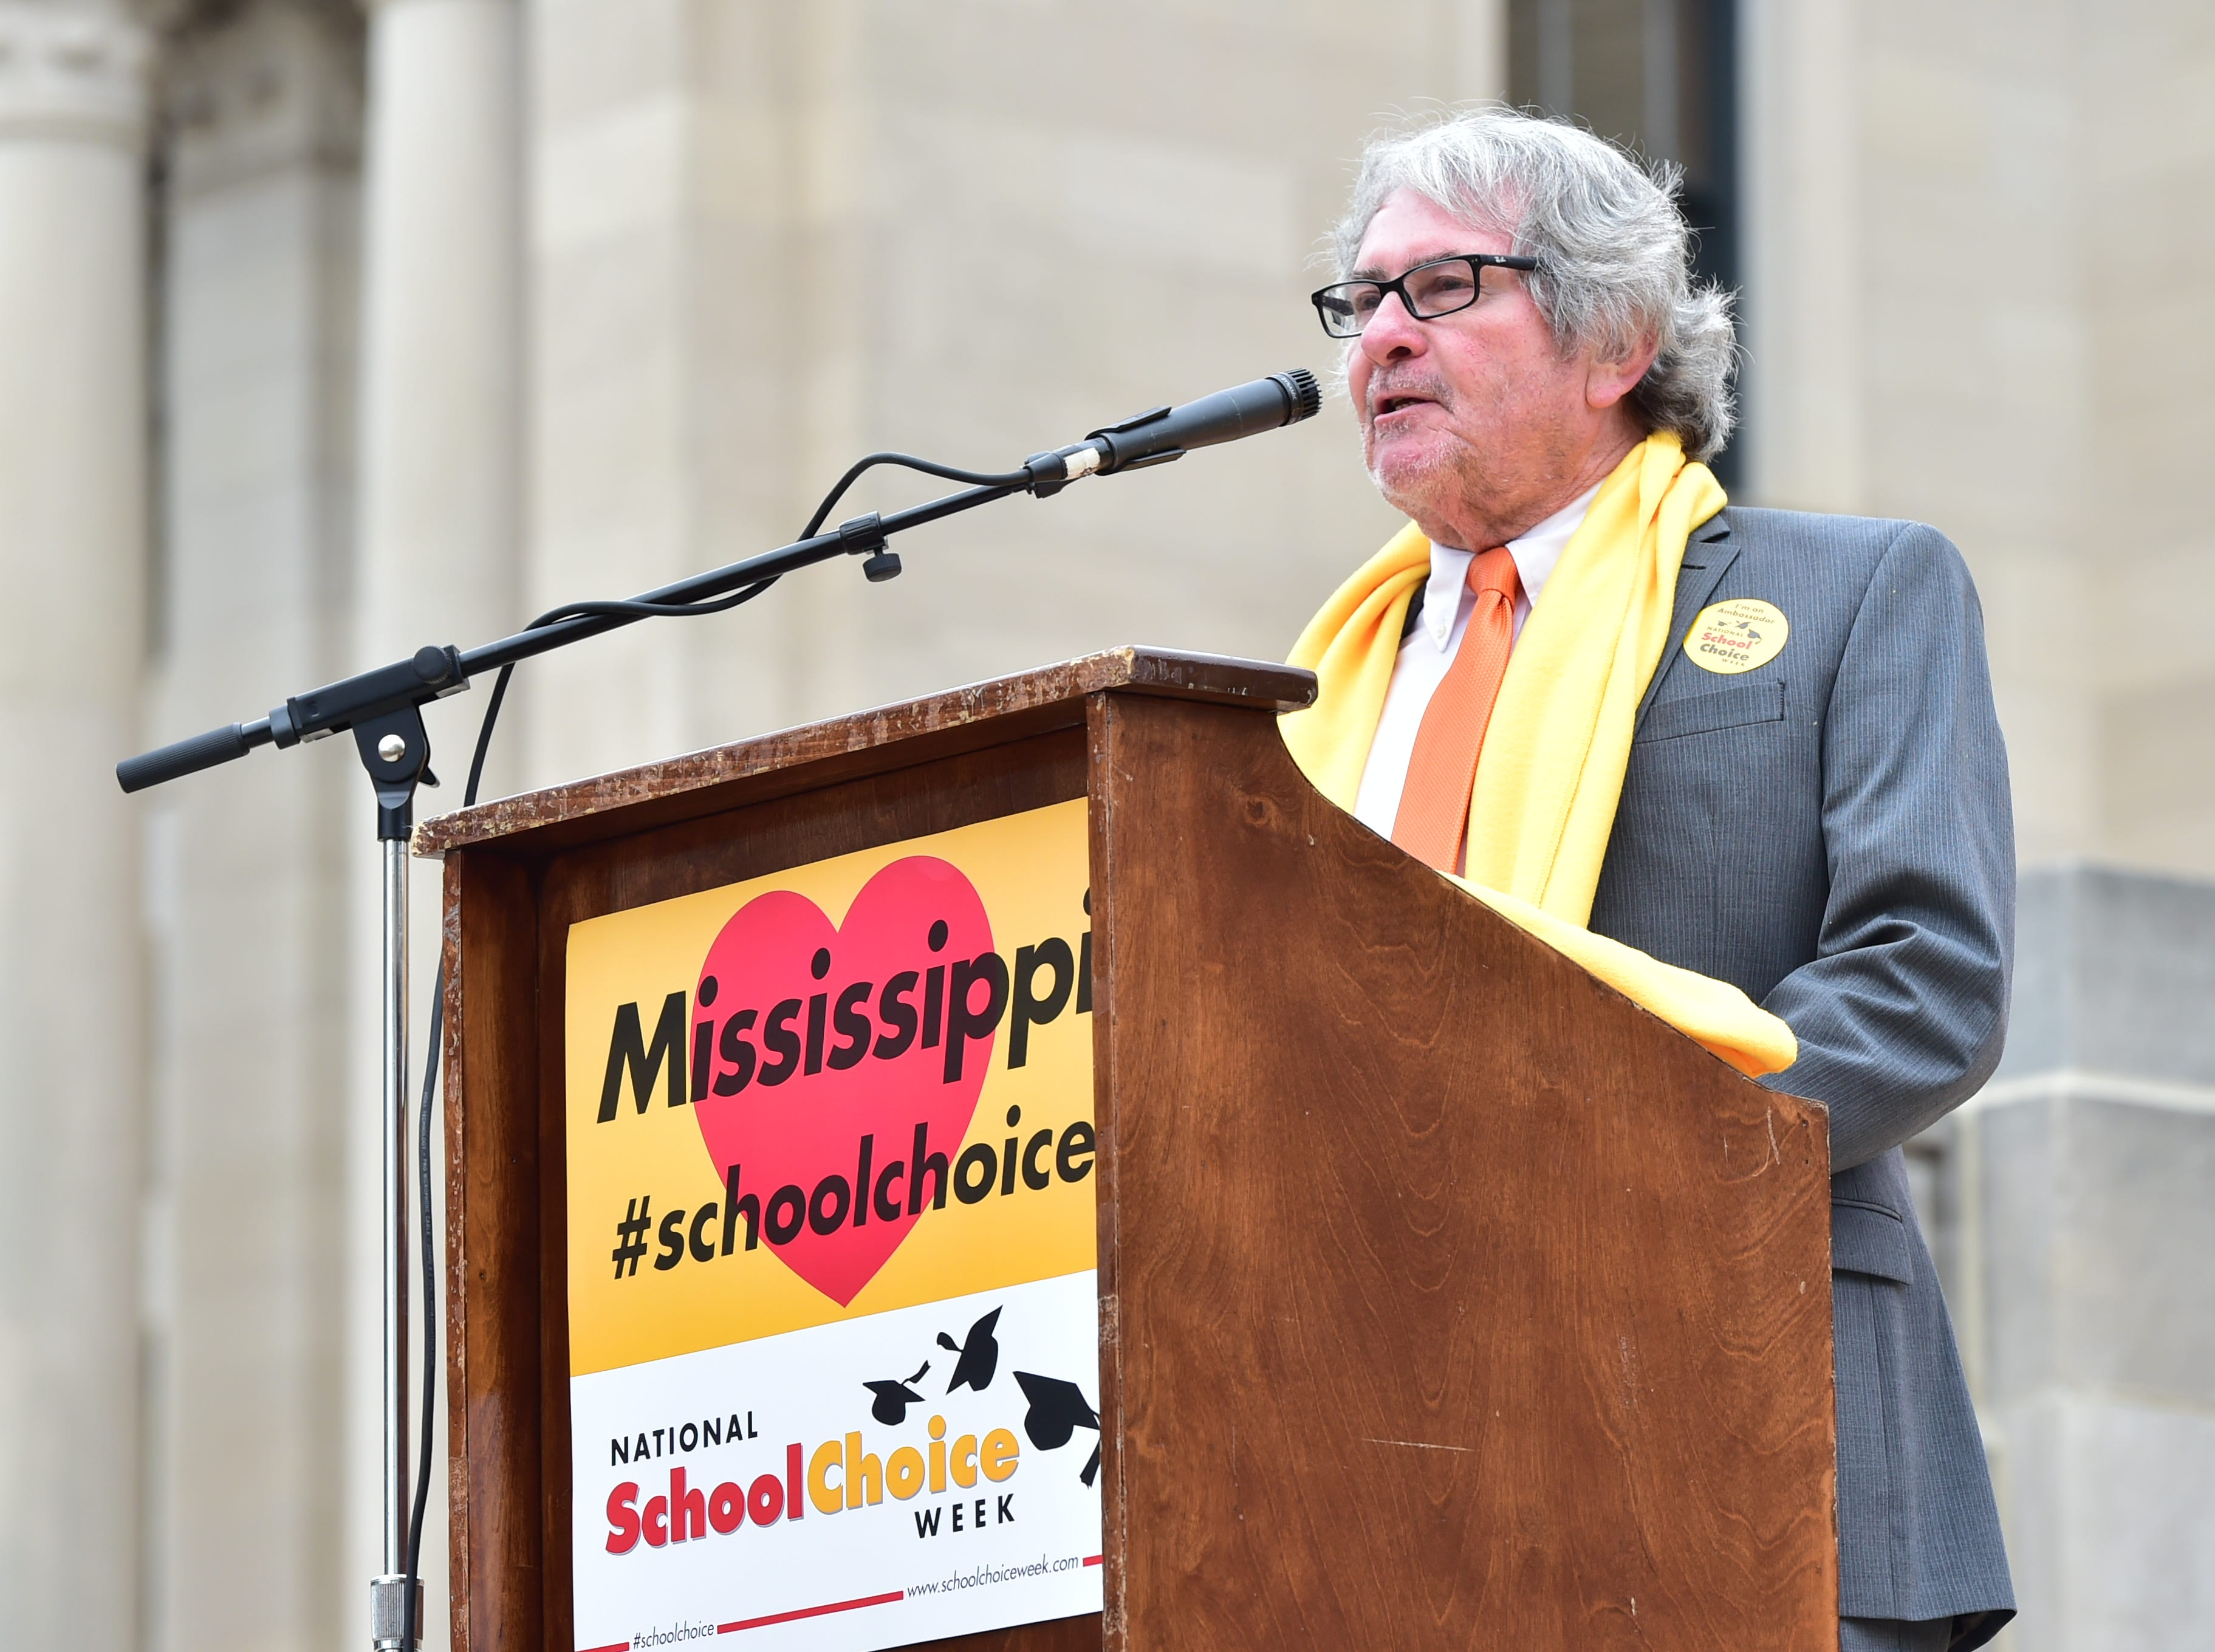 Dr. William Sutton, principal of New Summit High School, speaks to attendees of a National School Choice Week rally held on the steps of the capitol building in Jackson, MS. Students from across the state attended the rally and met with legislators regarding school choice in Mississippi. Tuesday, Jan. 22, 2019.